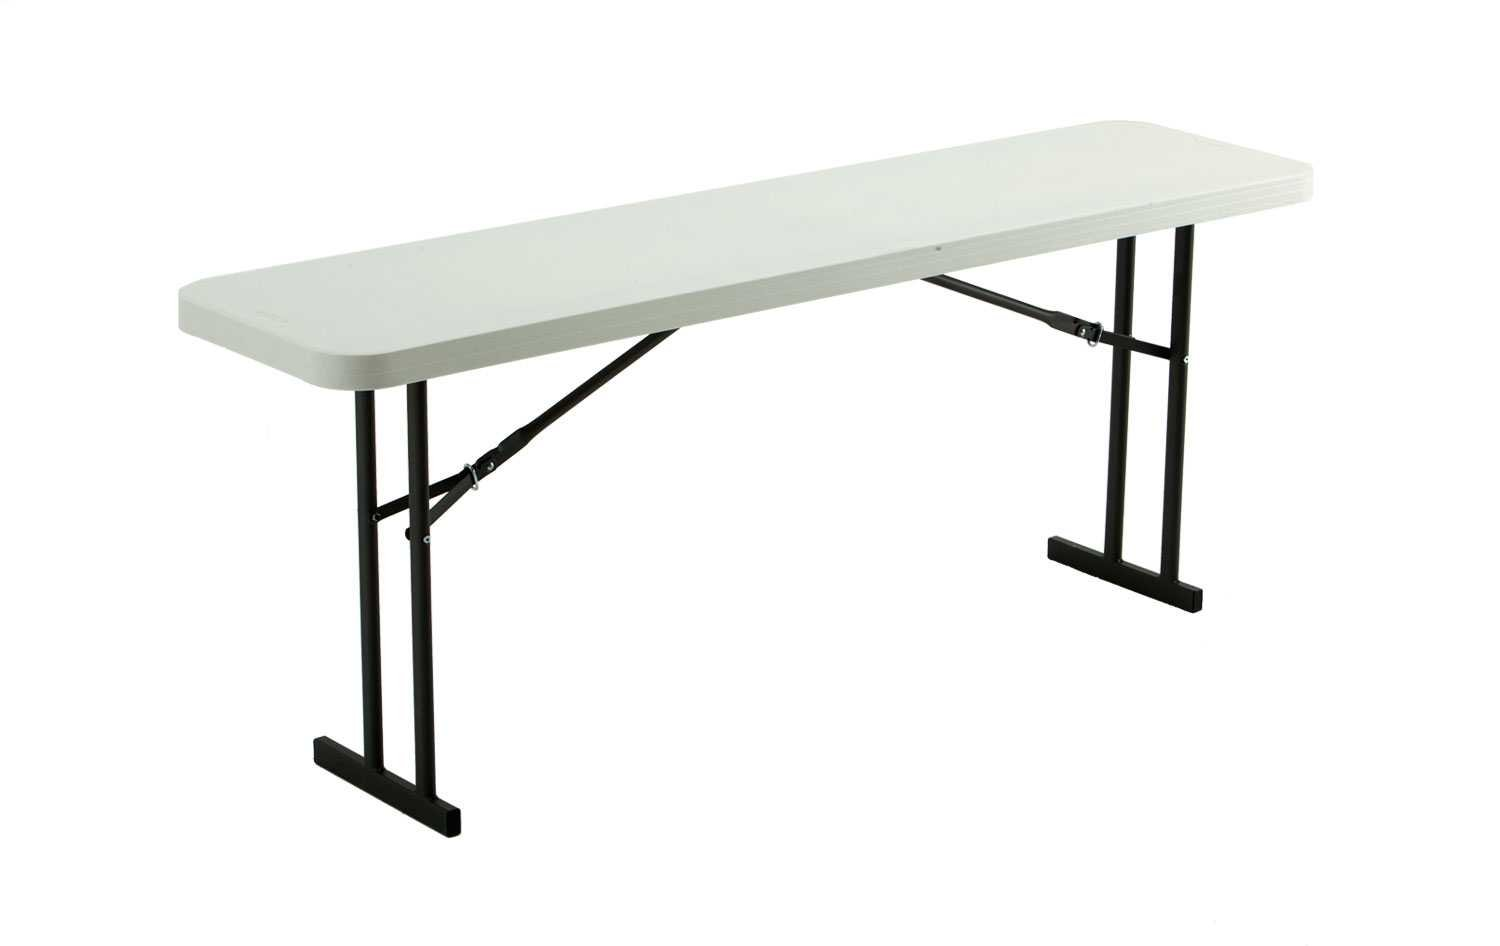 Amazon.com : Lifetime 80176 Folding Conference Training Table, 6 Feet,  White Granite : Patio Dining Tables : Garden U0026 Outdoor